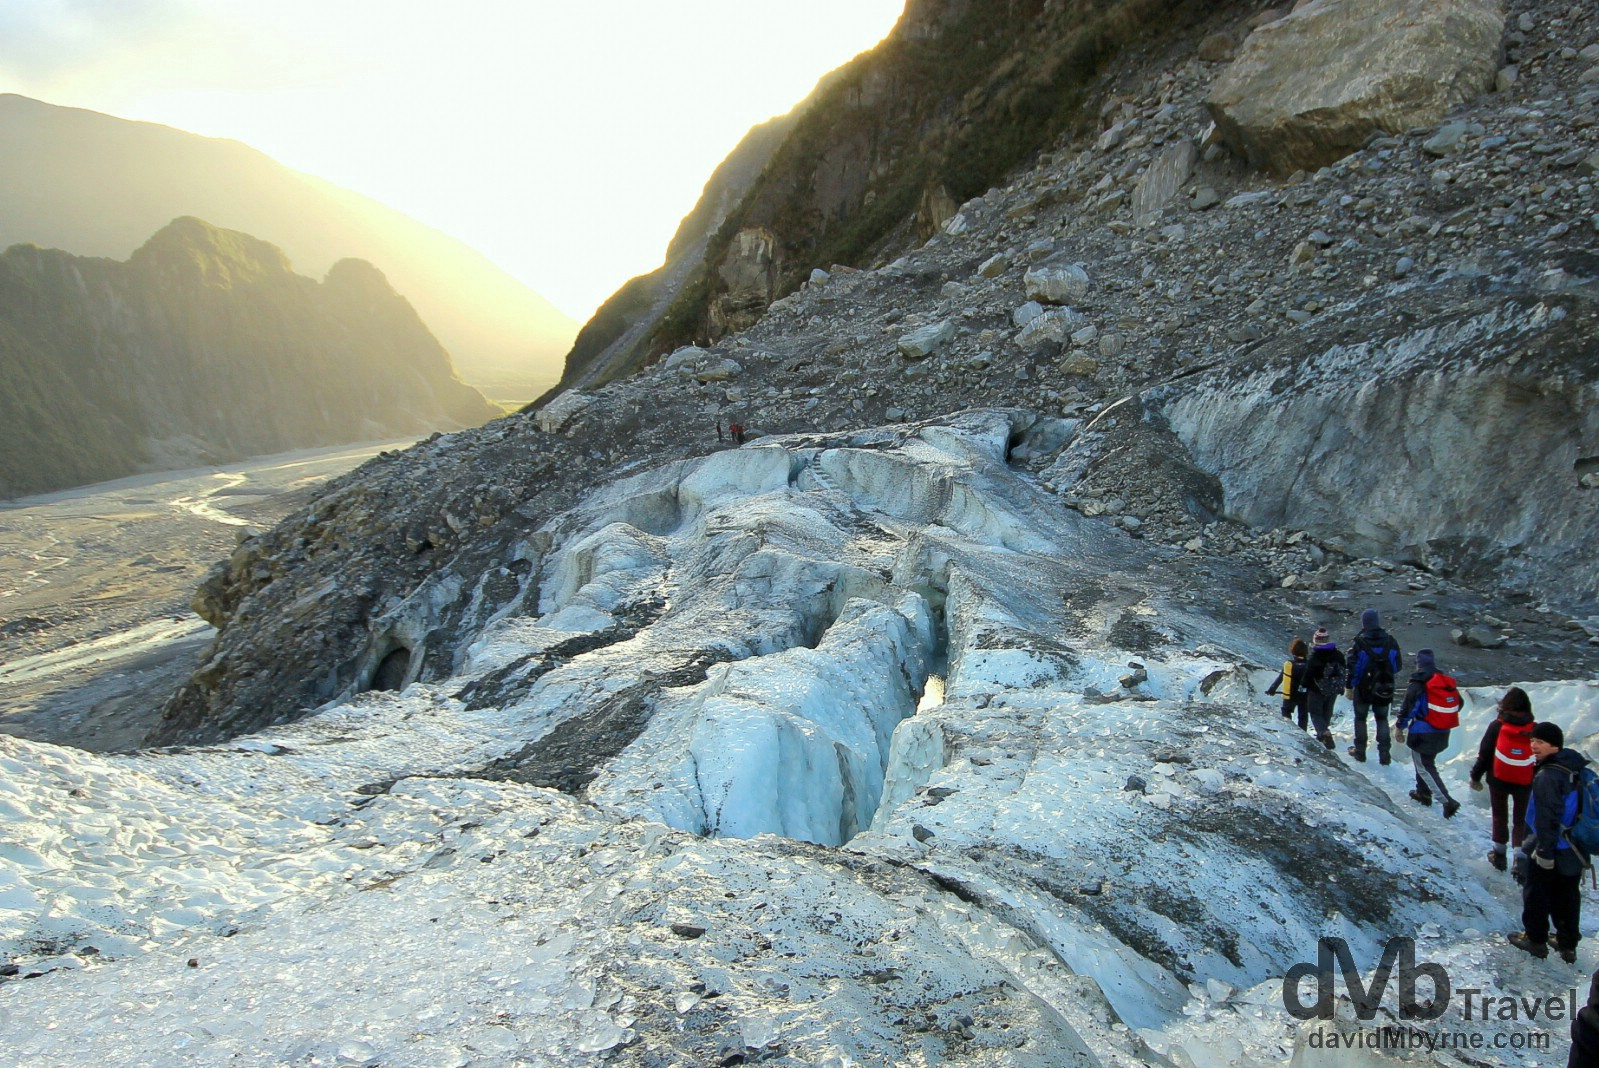 A guided party descending the Fox Glacier as late afternoon sunlight bathes the valley below. Fox Glacier, South Island, New Zealand. May 19th 2012.